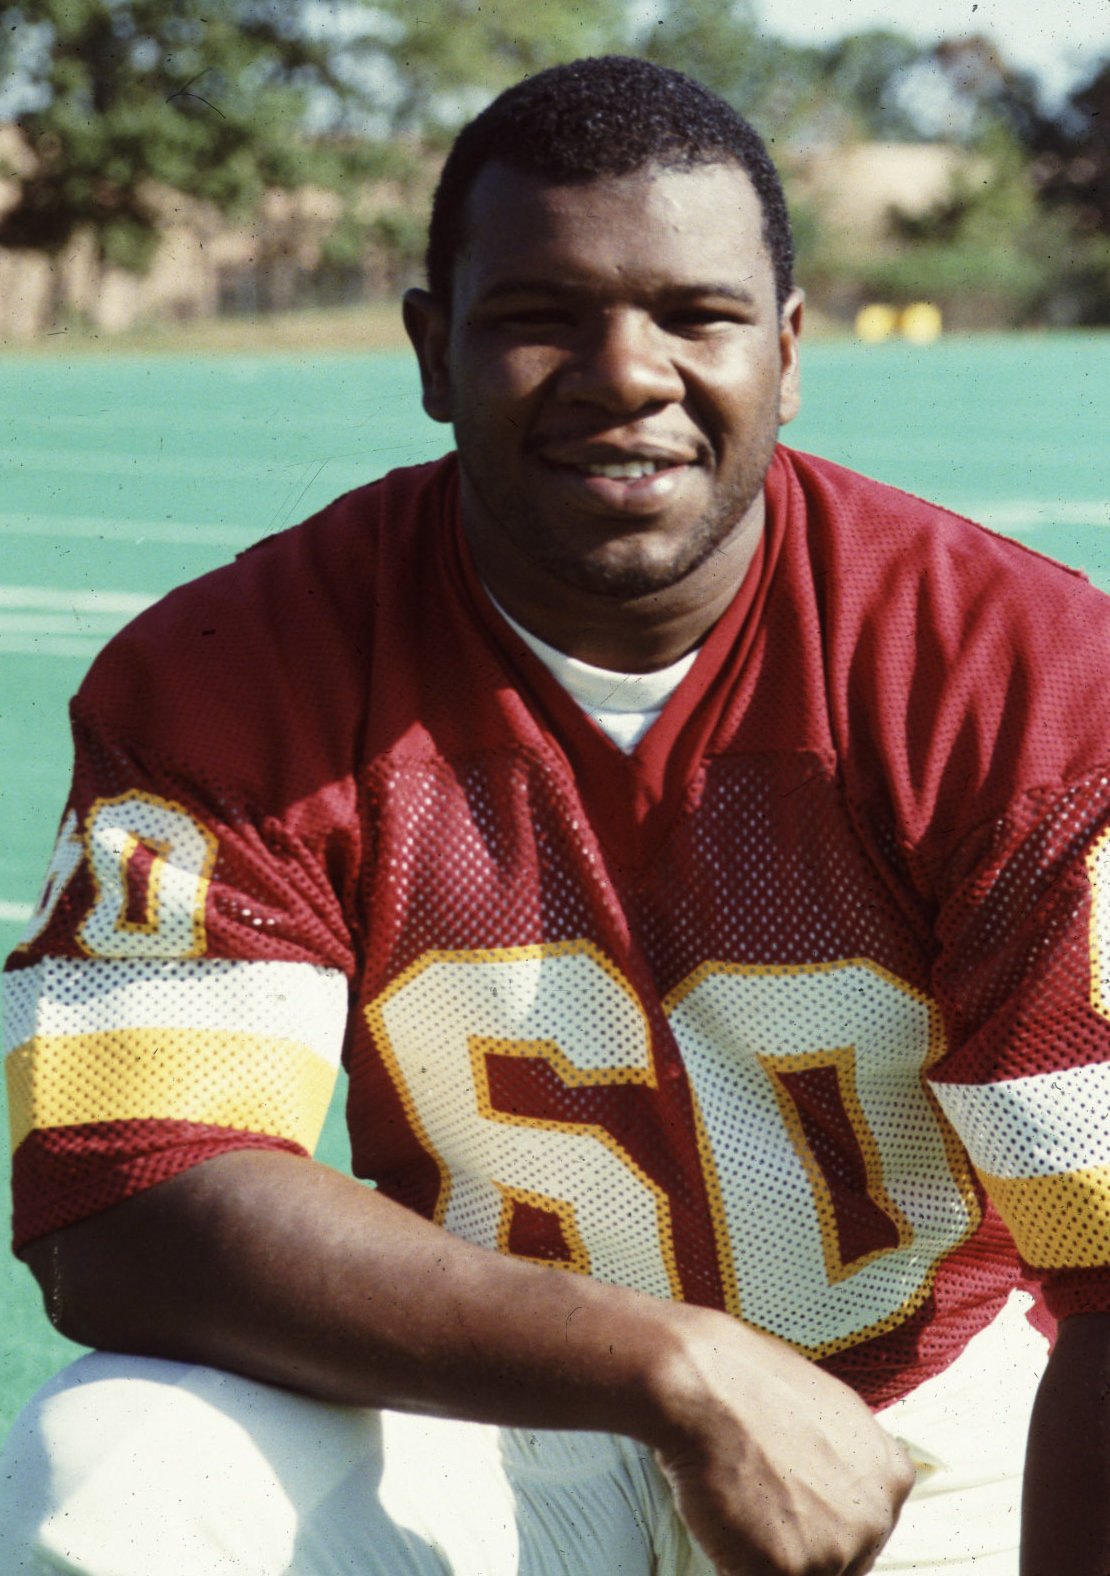 Simmons Redskins